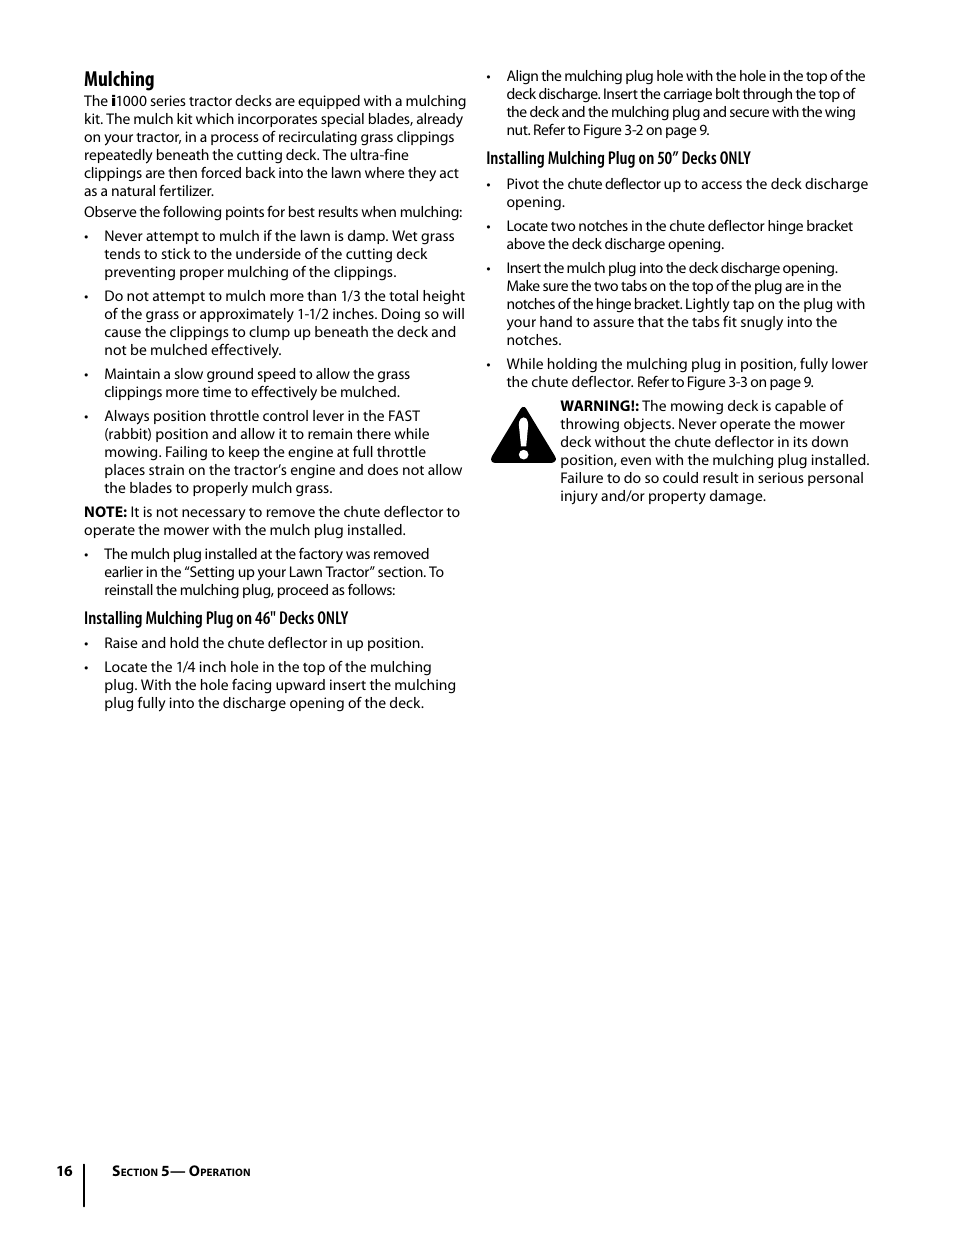 Mulching | Cub Cadet i1050 User Manual | Page 16 / 32